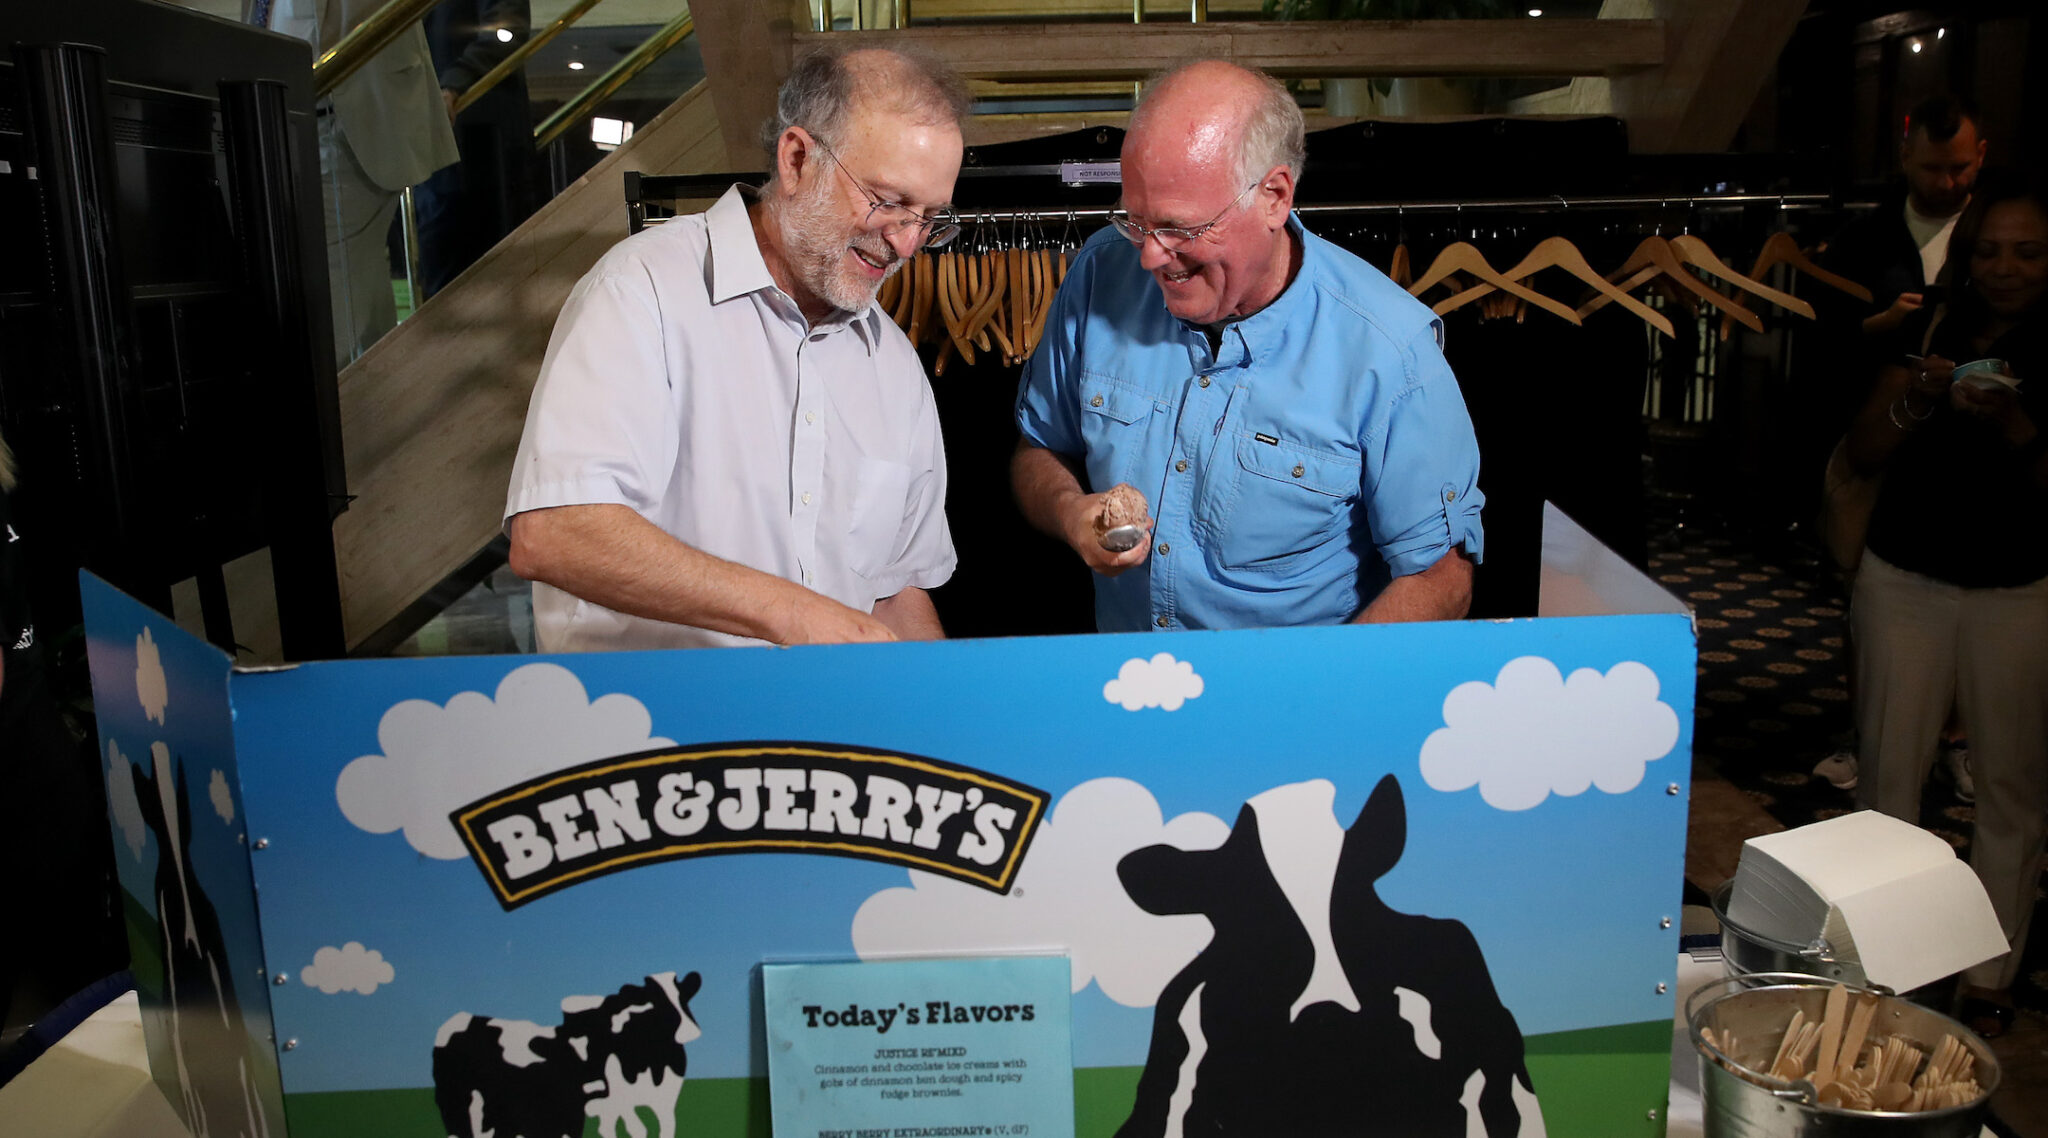 Ben & Jerry's co-founders Jerry Greenfield (left) and Ben Cohen serve ice cream following a press conference announcing a new flavor in Washington, D.C., Sept. 3, 2019. (Photo/JTA-Win McNamee-Getty Images)